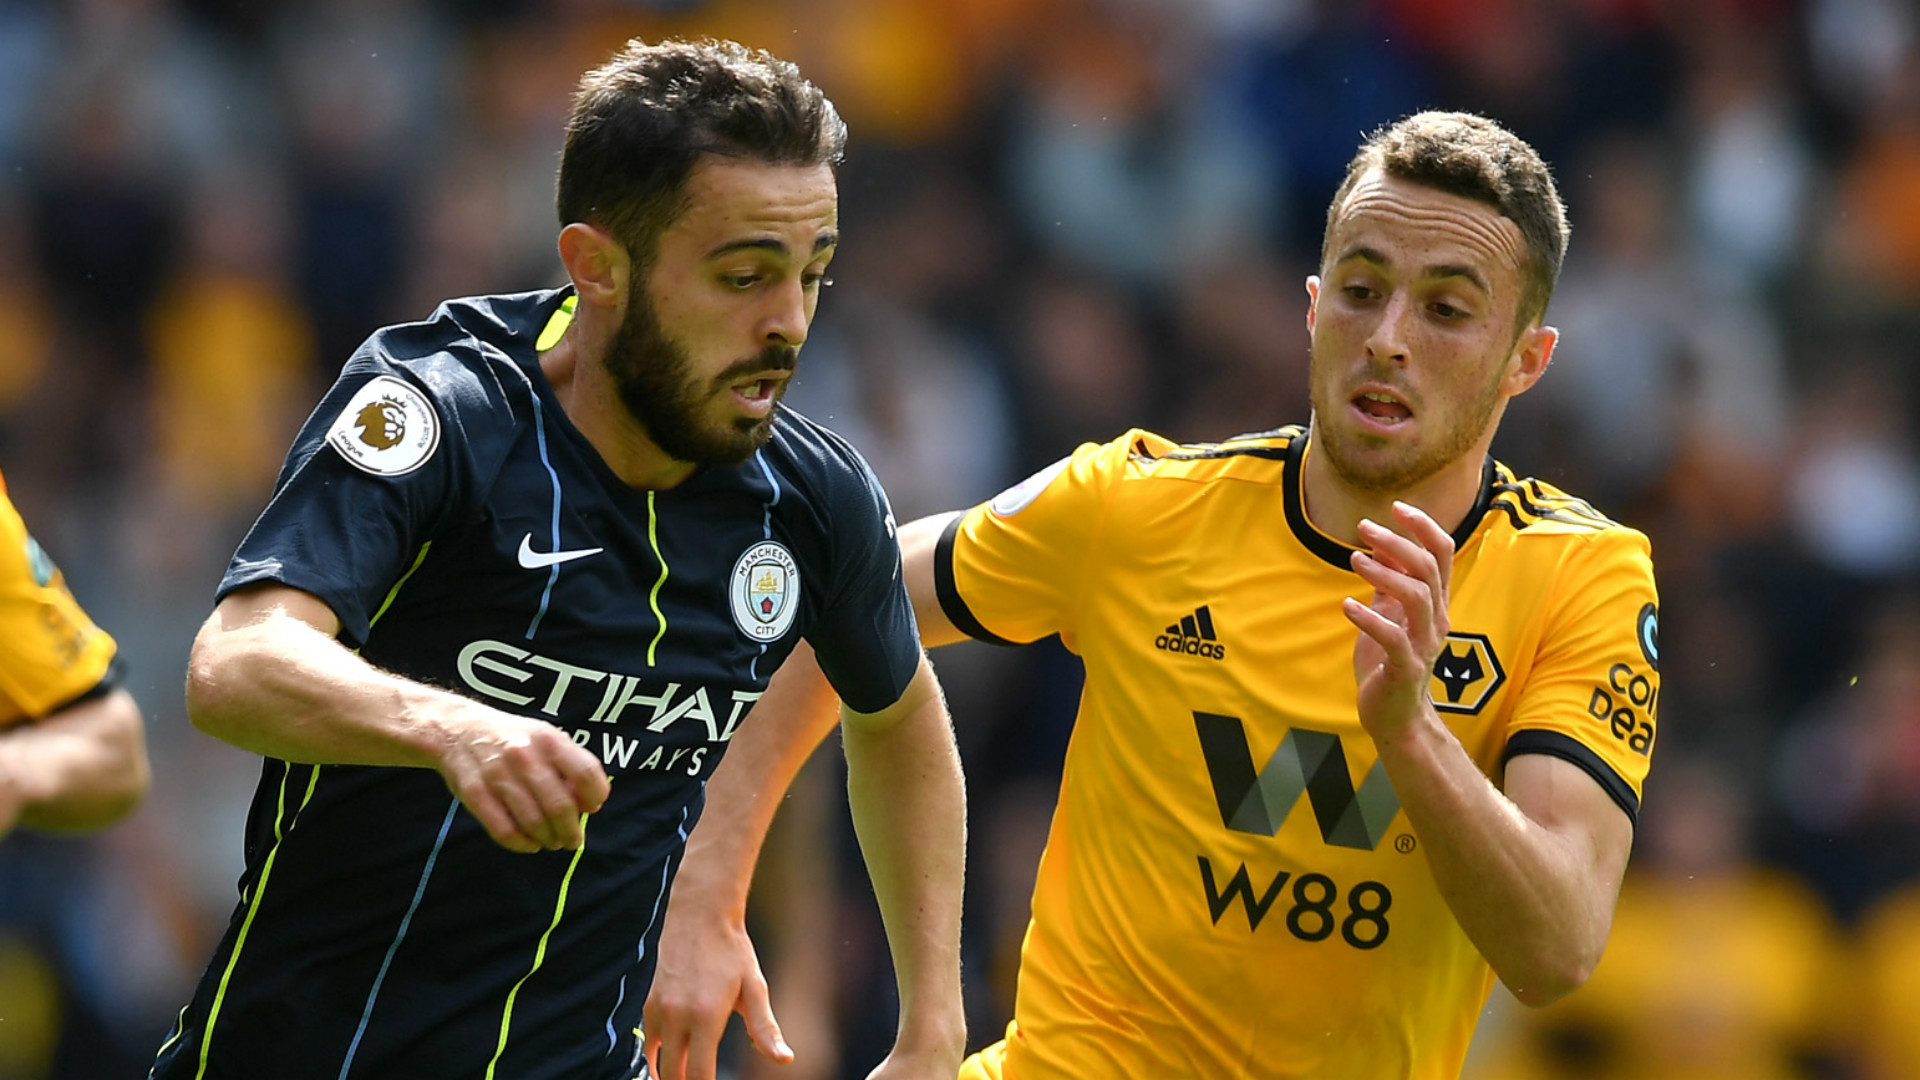 wolves vs man city - HD 1920×1080